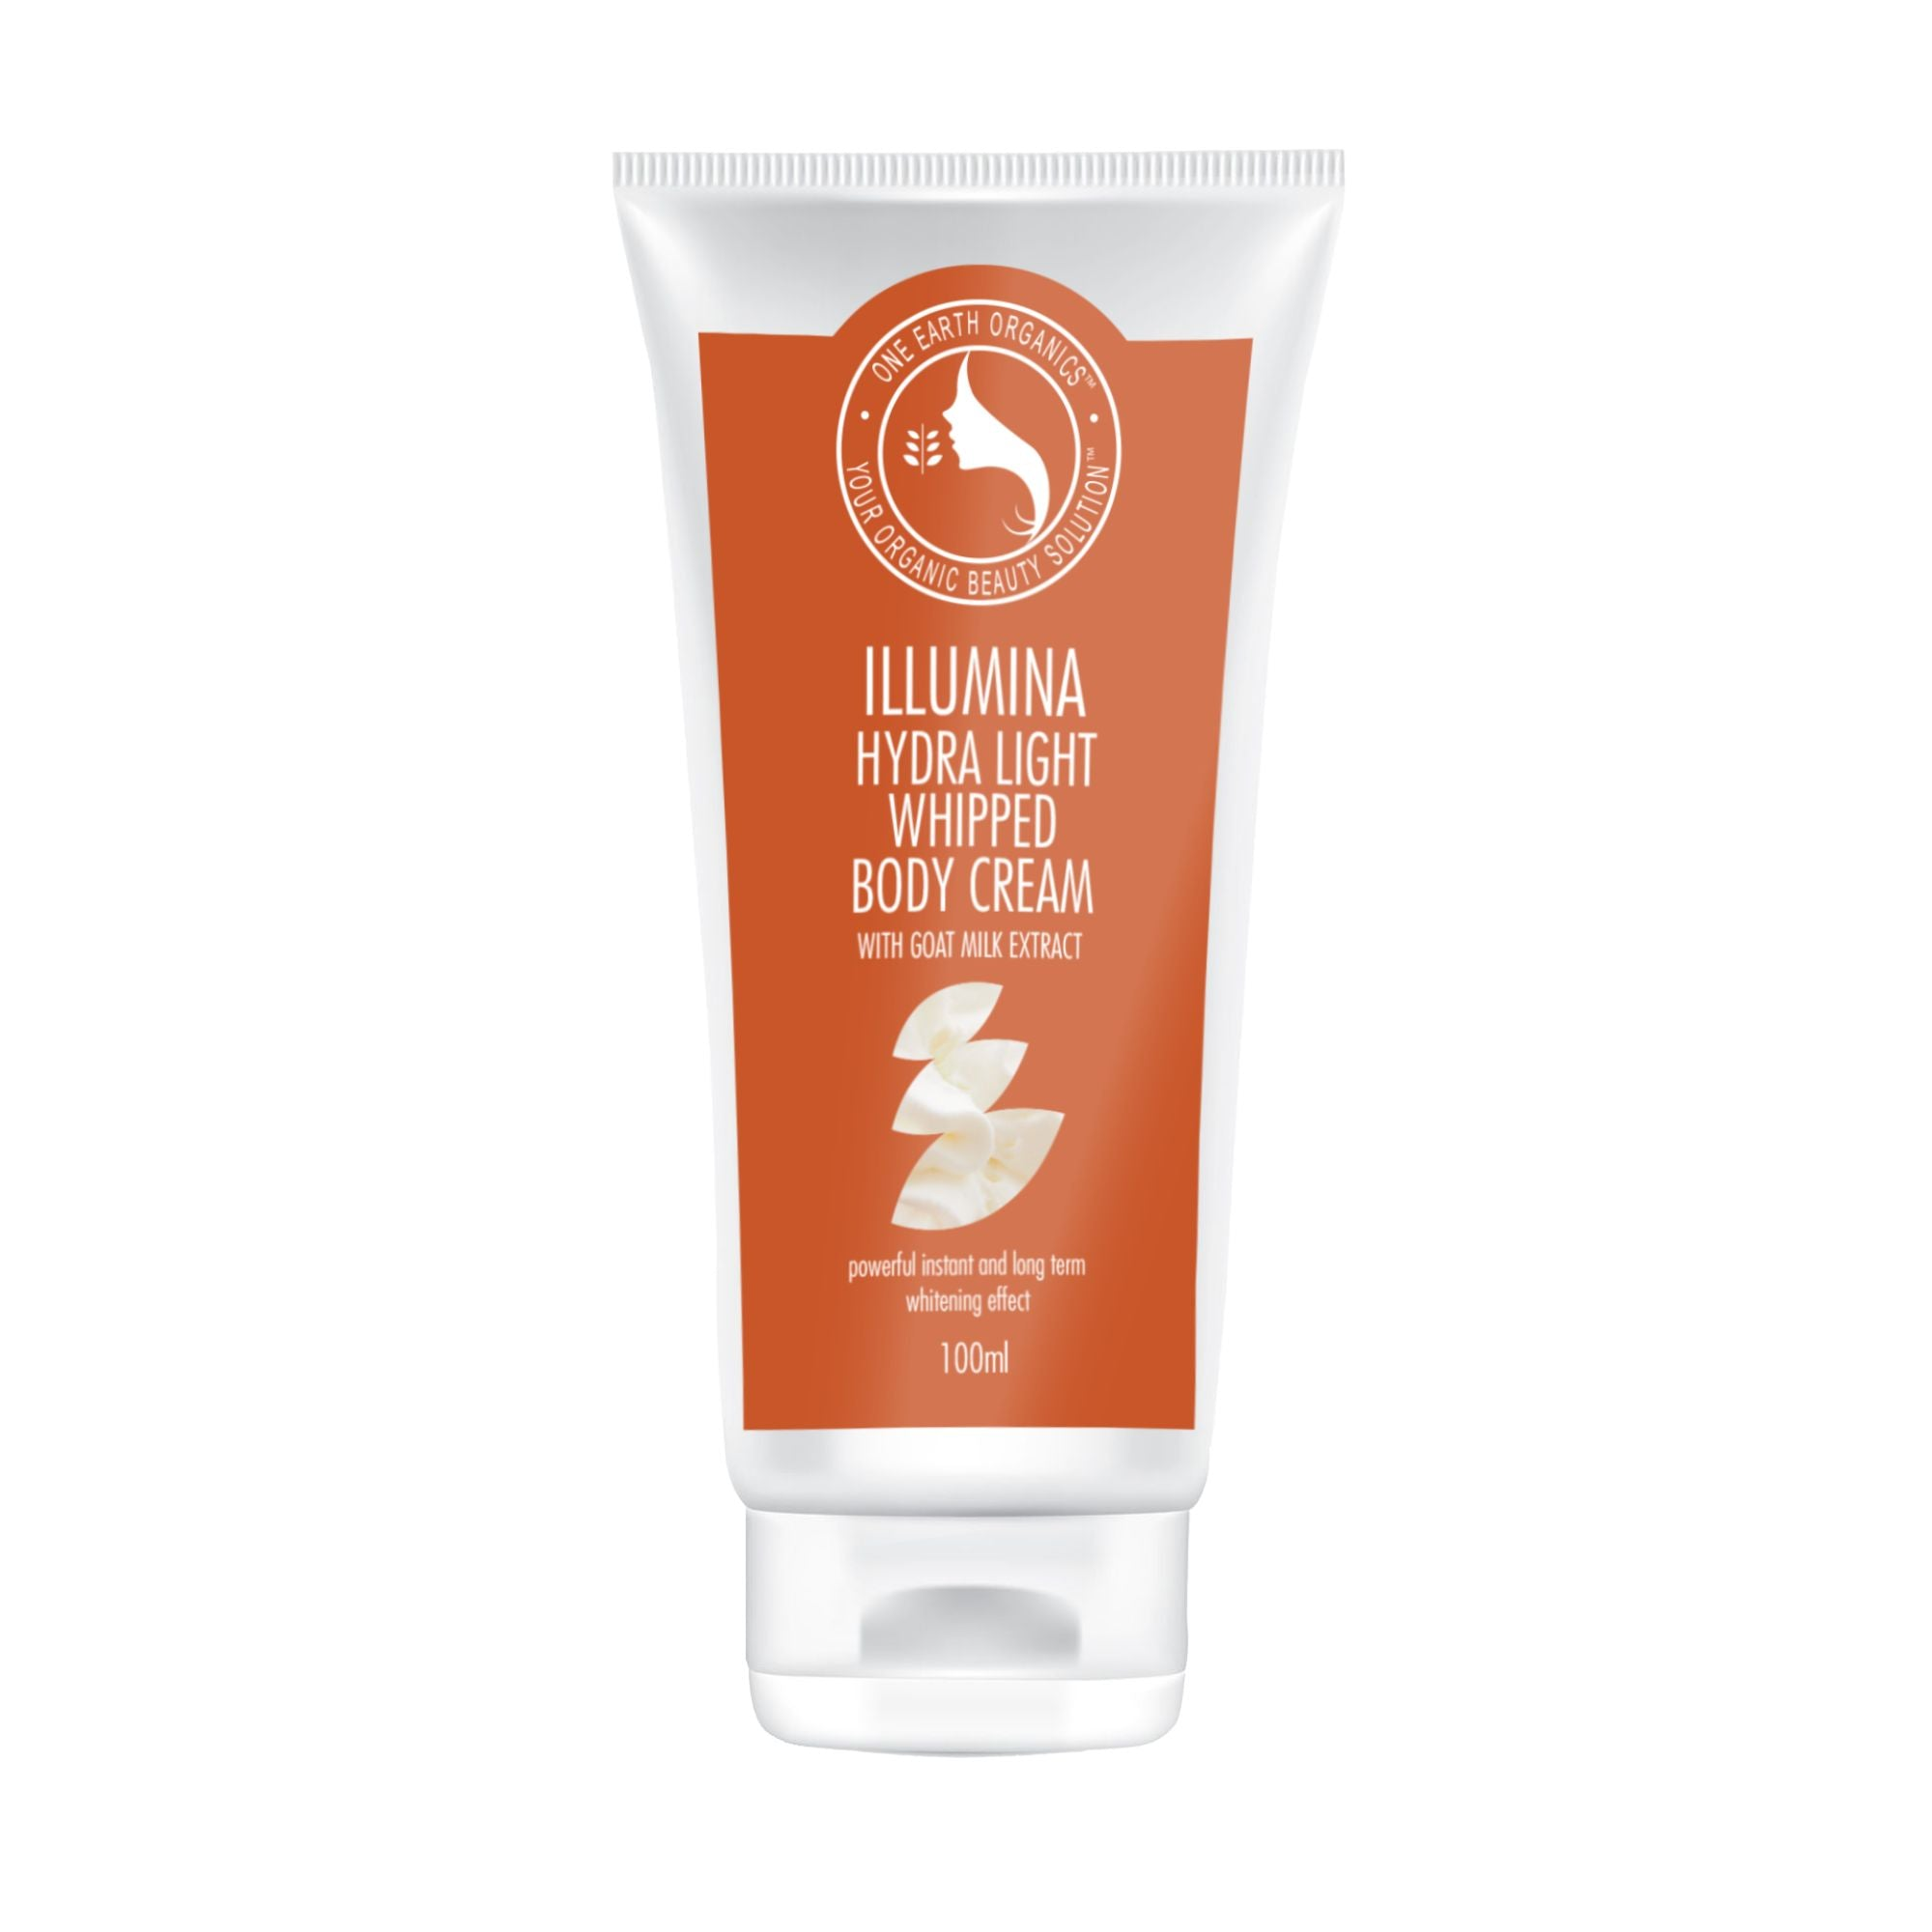 Illumina Hydra Light Whipped Body Cream